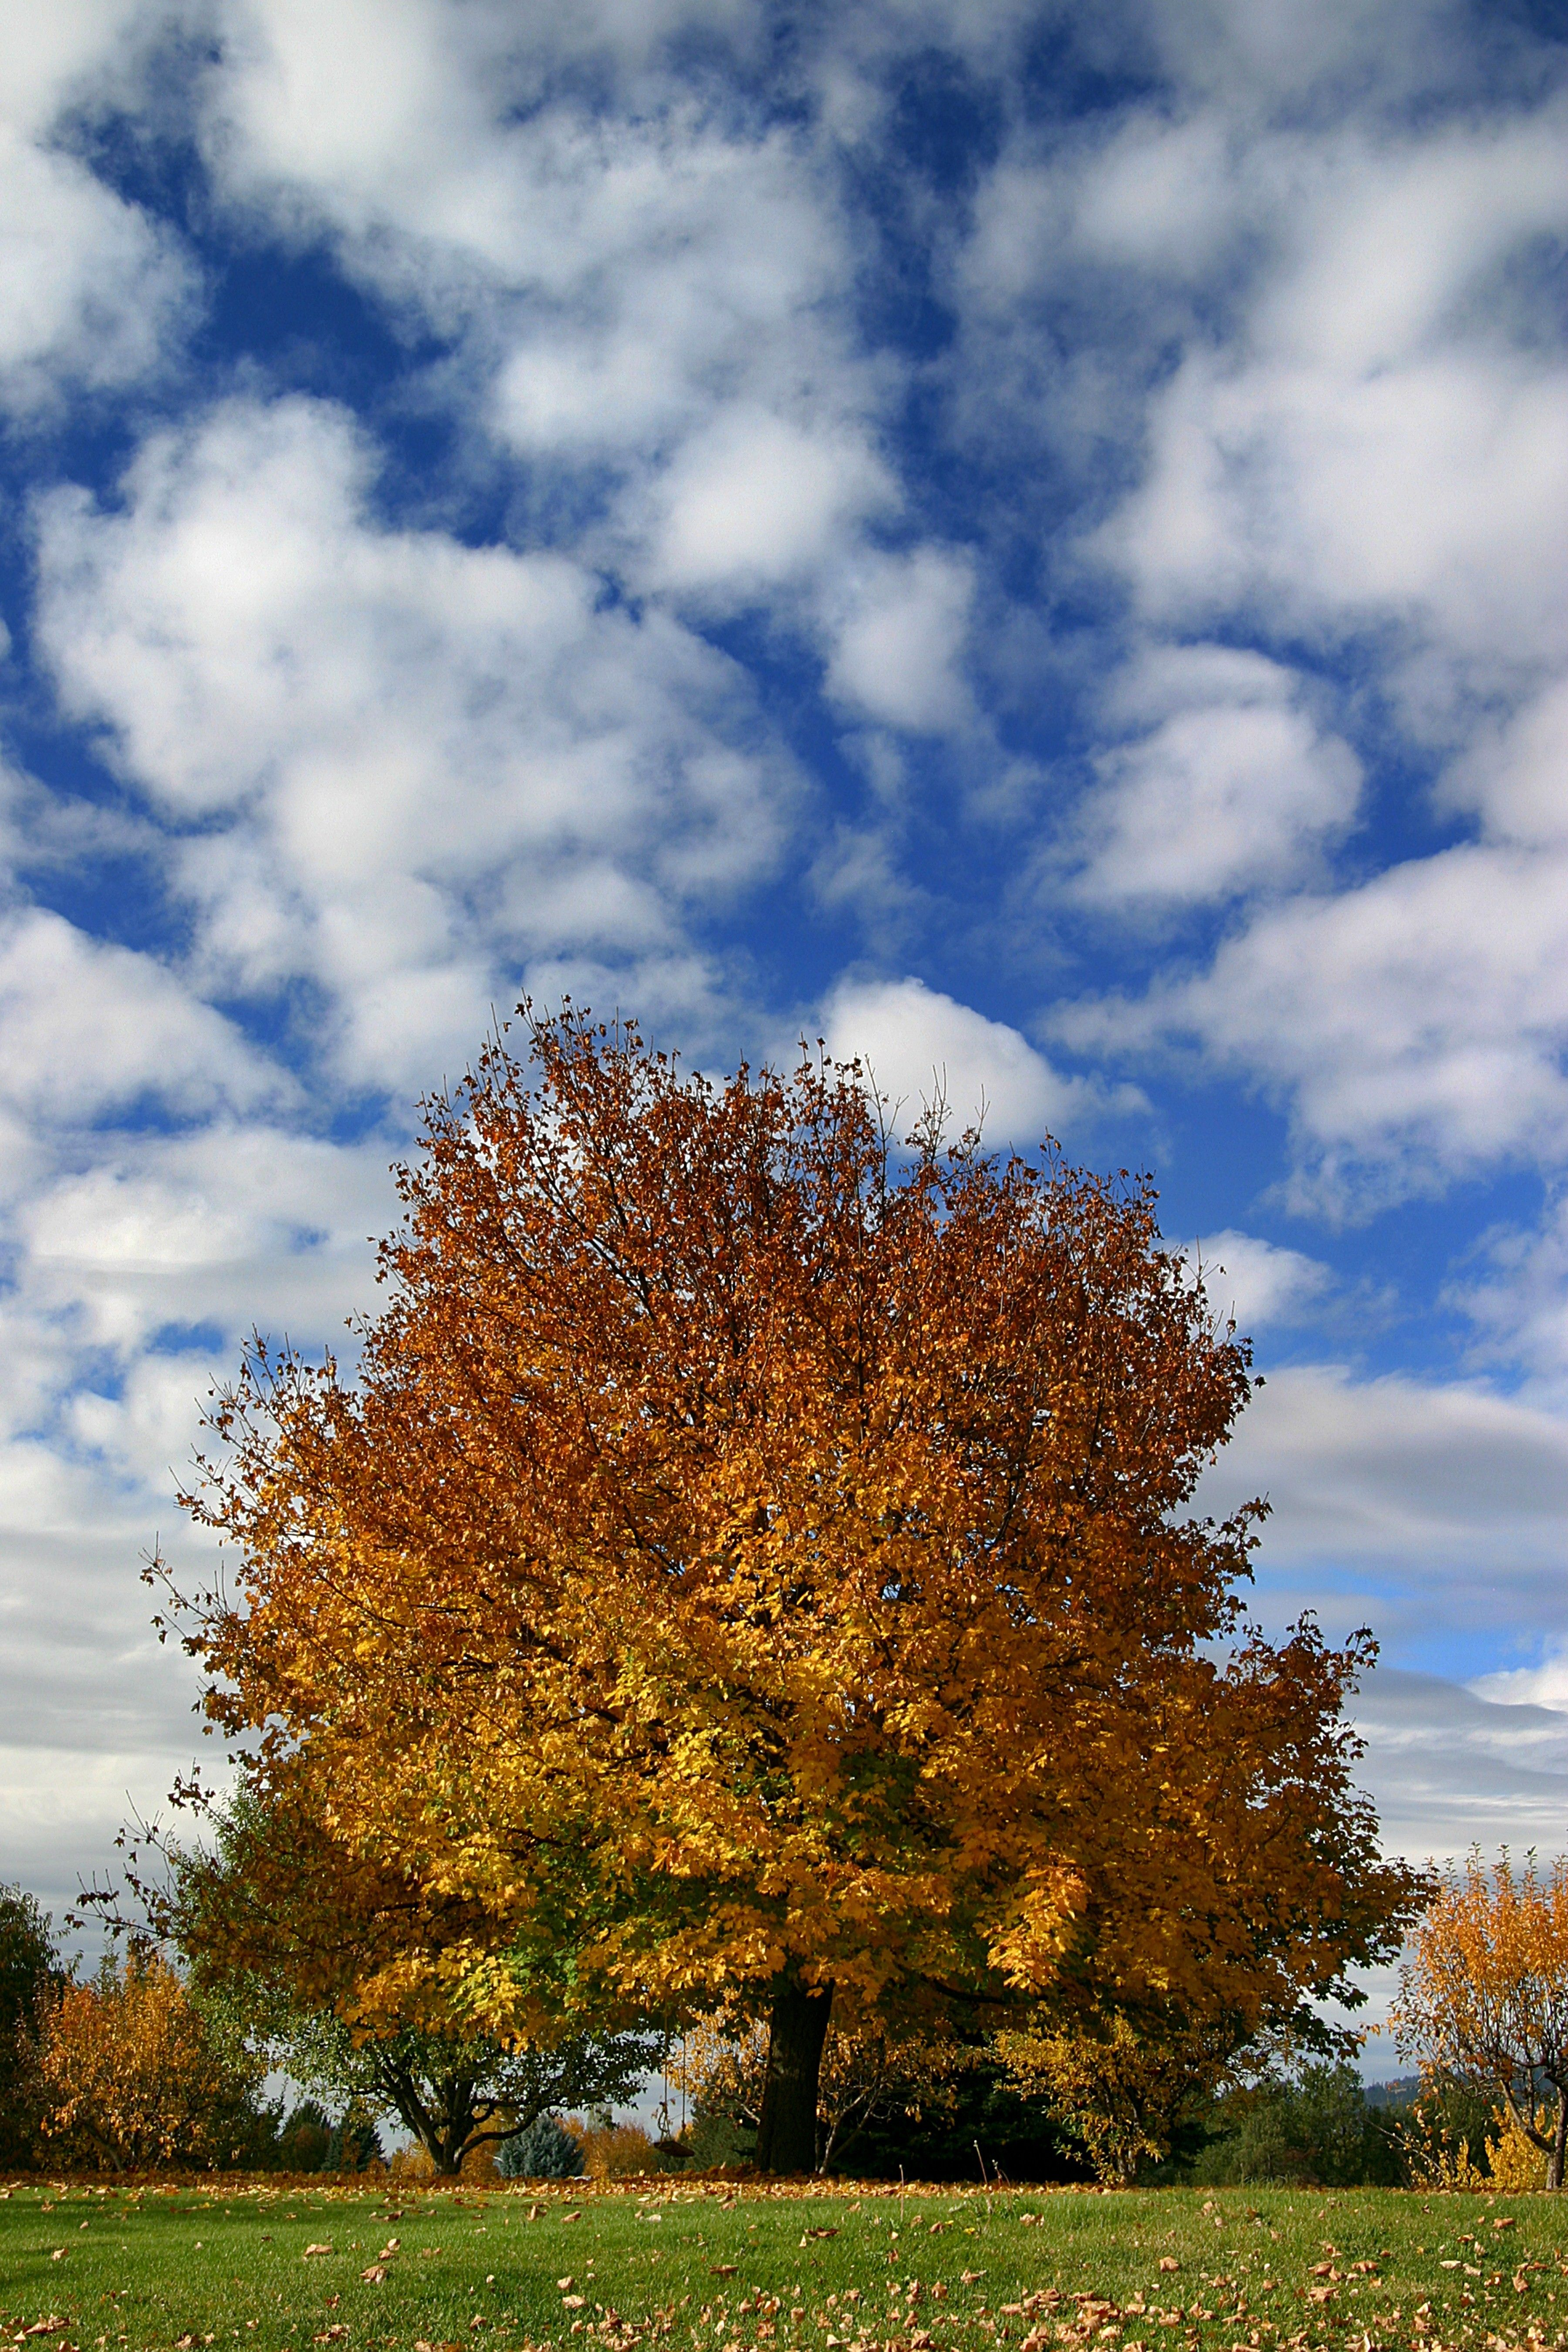 Trees with changing leaves on a sunny day.